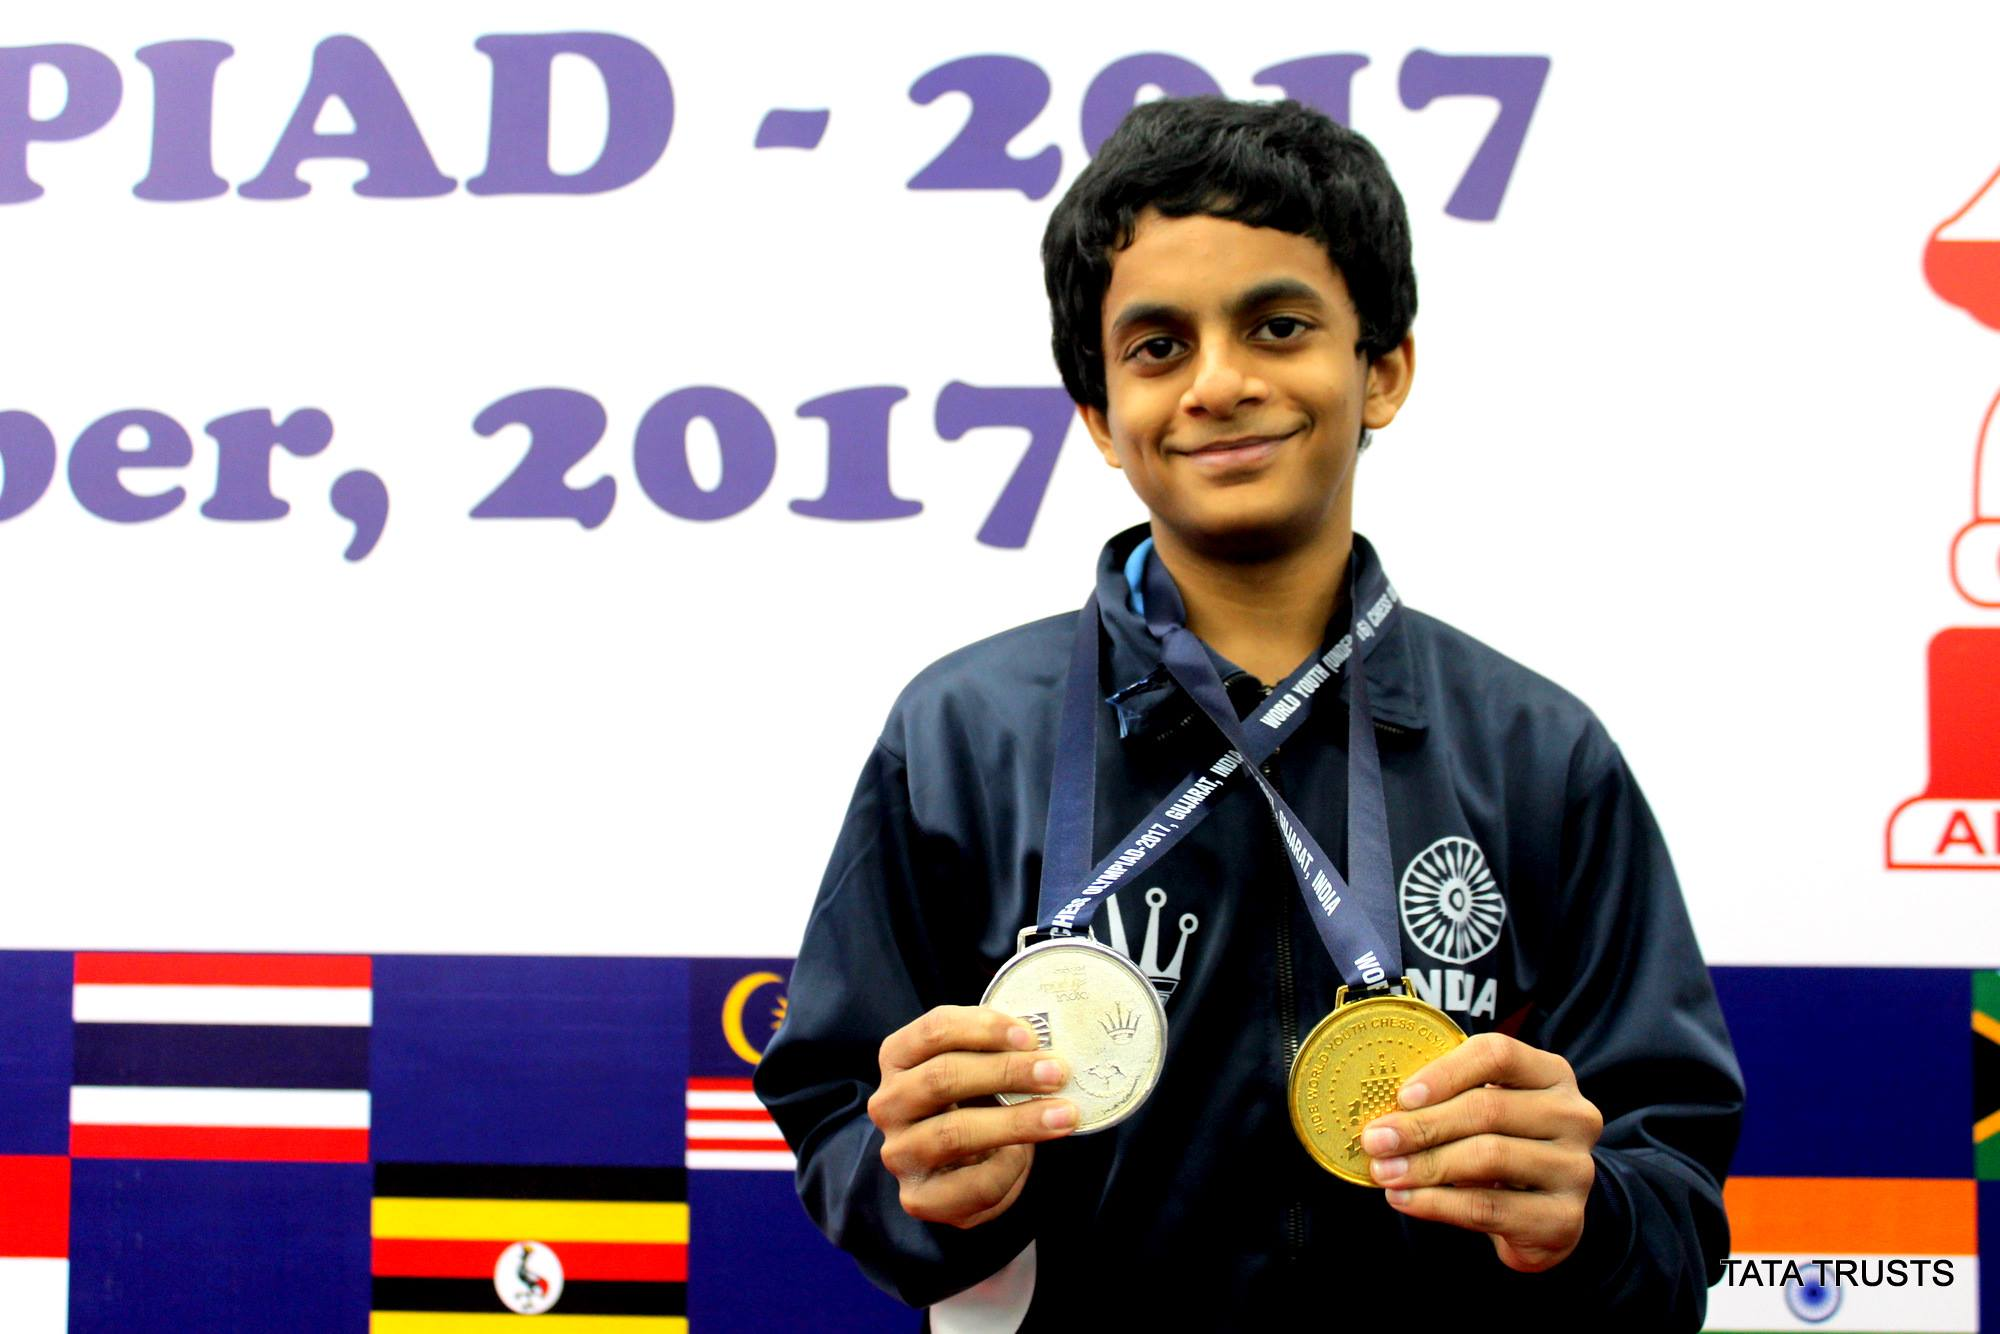 Nihal recently represented India at the youth Olympiad. Credit: Tata Trusts